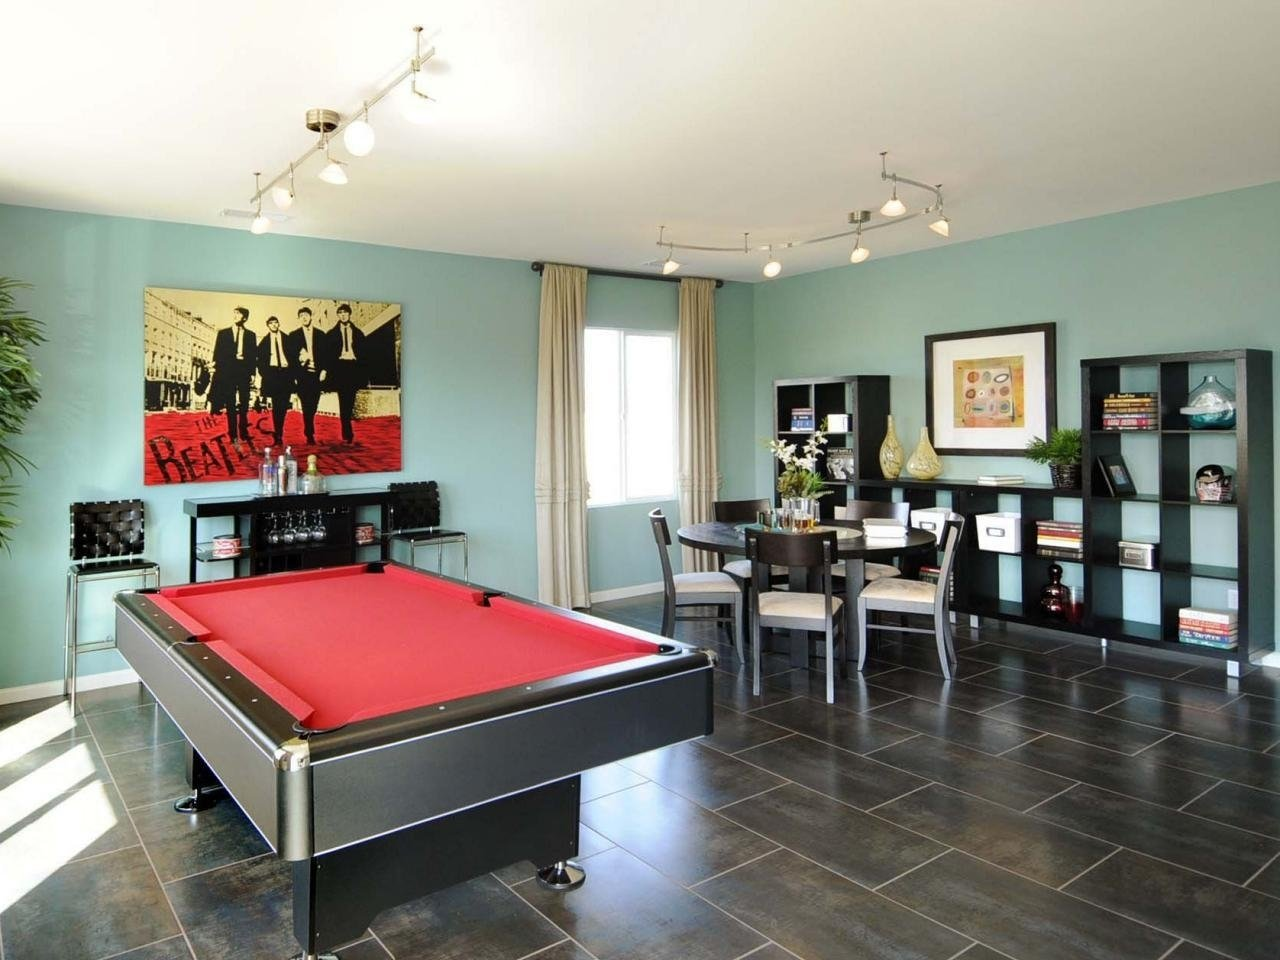 10 Gorgeous Game Room Ideas For Adults unbelievable new fun game room ideas on home design for small spaces